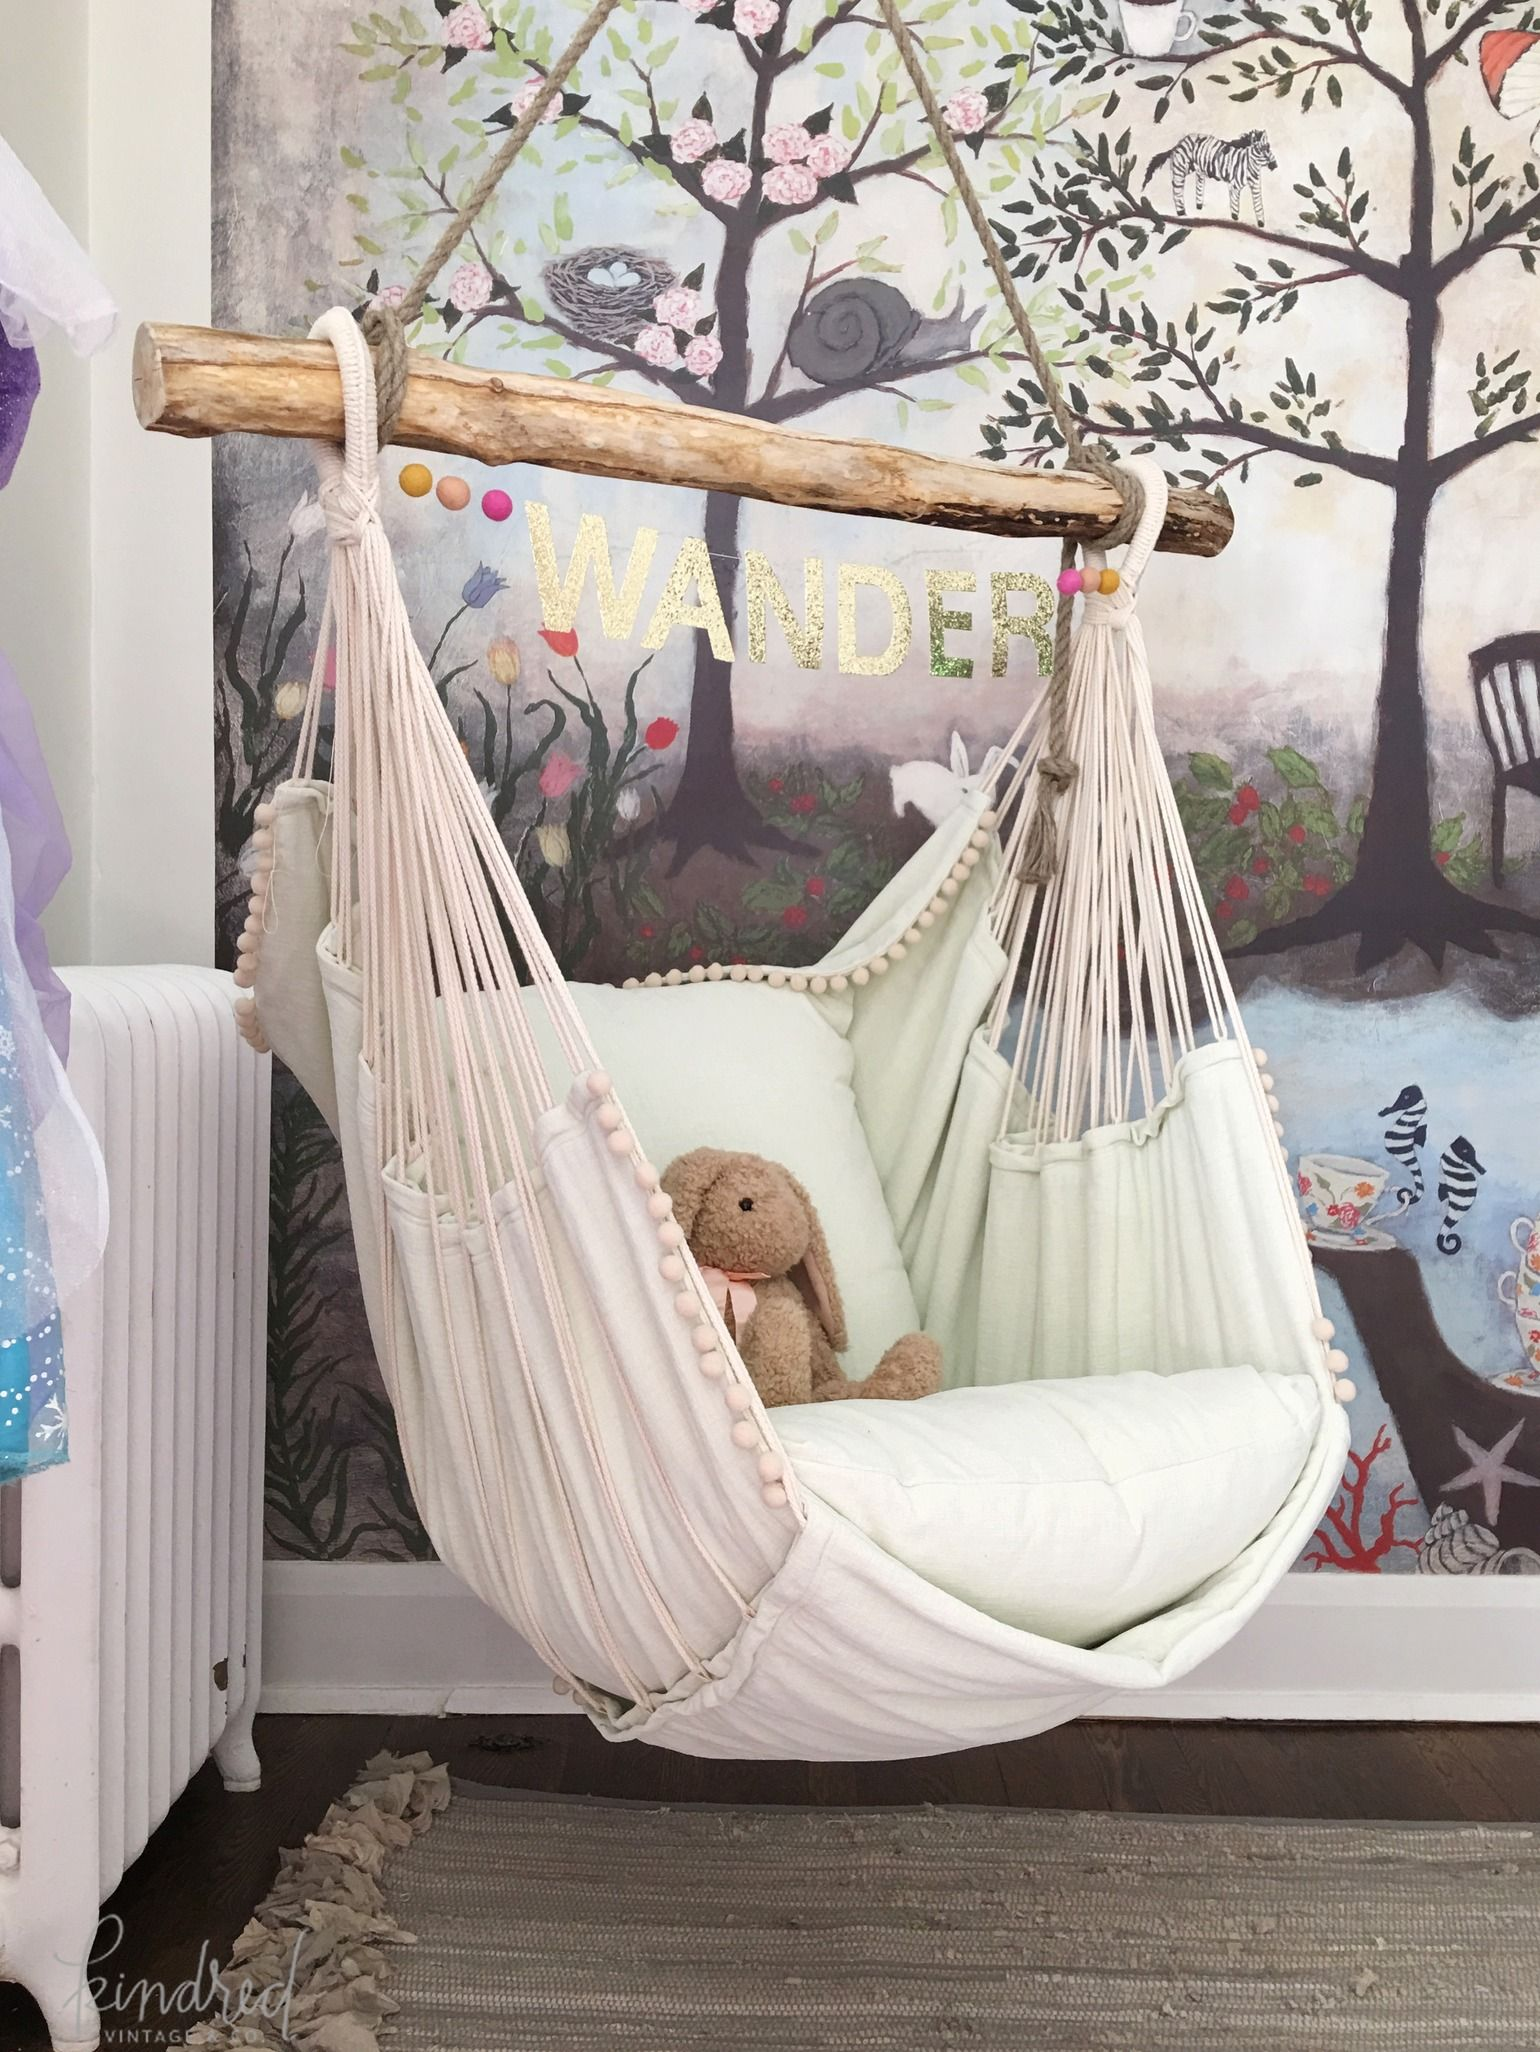 23 Cute Teen Room Decor Ideas for Girls | Diy hammock, Teen room ...